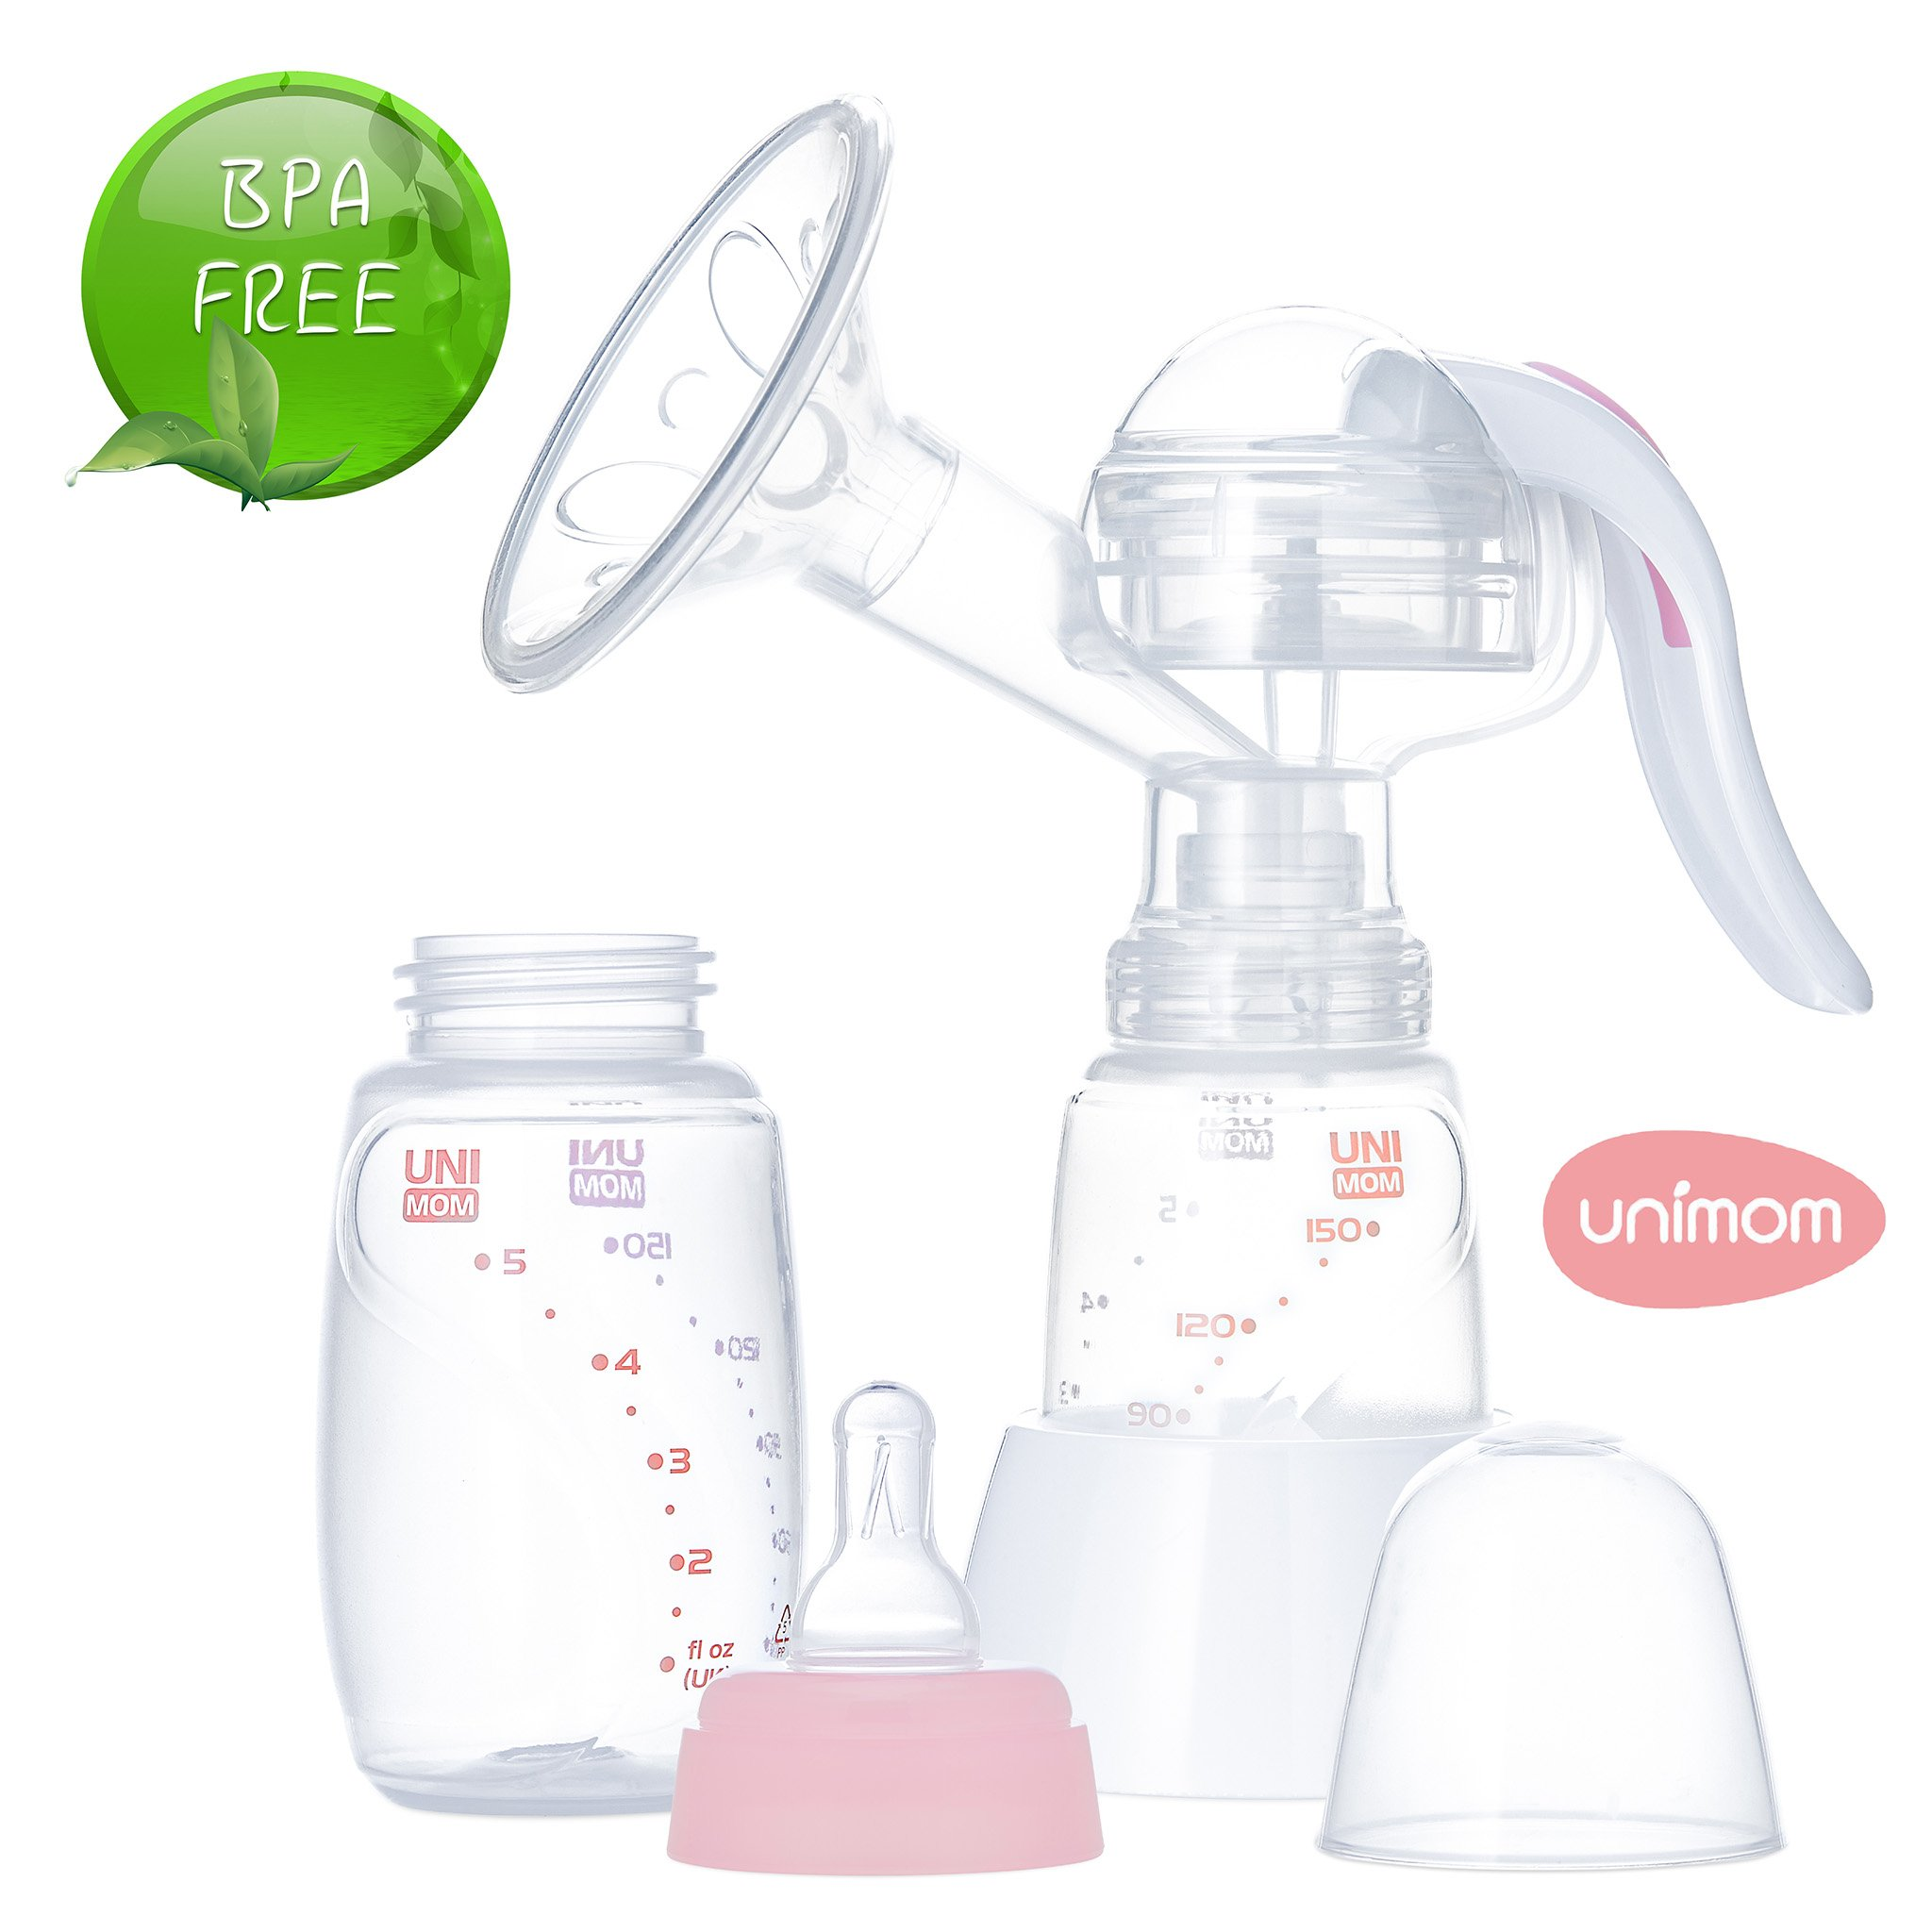 Unimom Manual Breast Pump with Soft Silicone Massaging Breast Shield - Ergonomic Rubber Handle - Includes Bottle and Stand - BPA Free - by Unimom by unimom